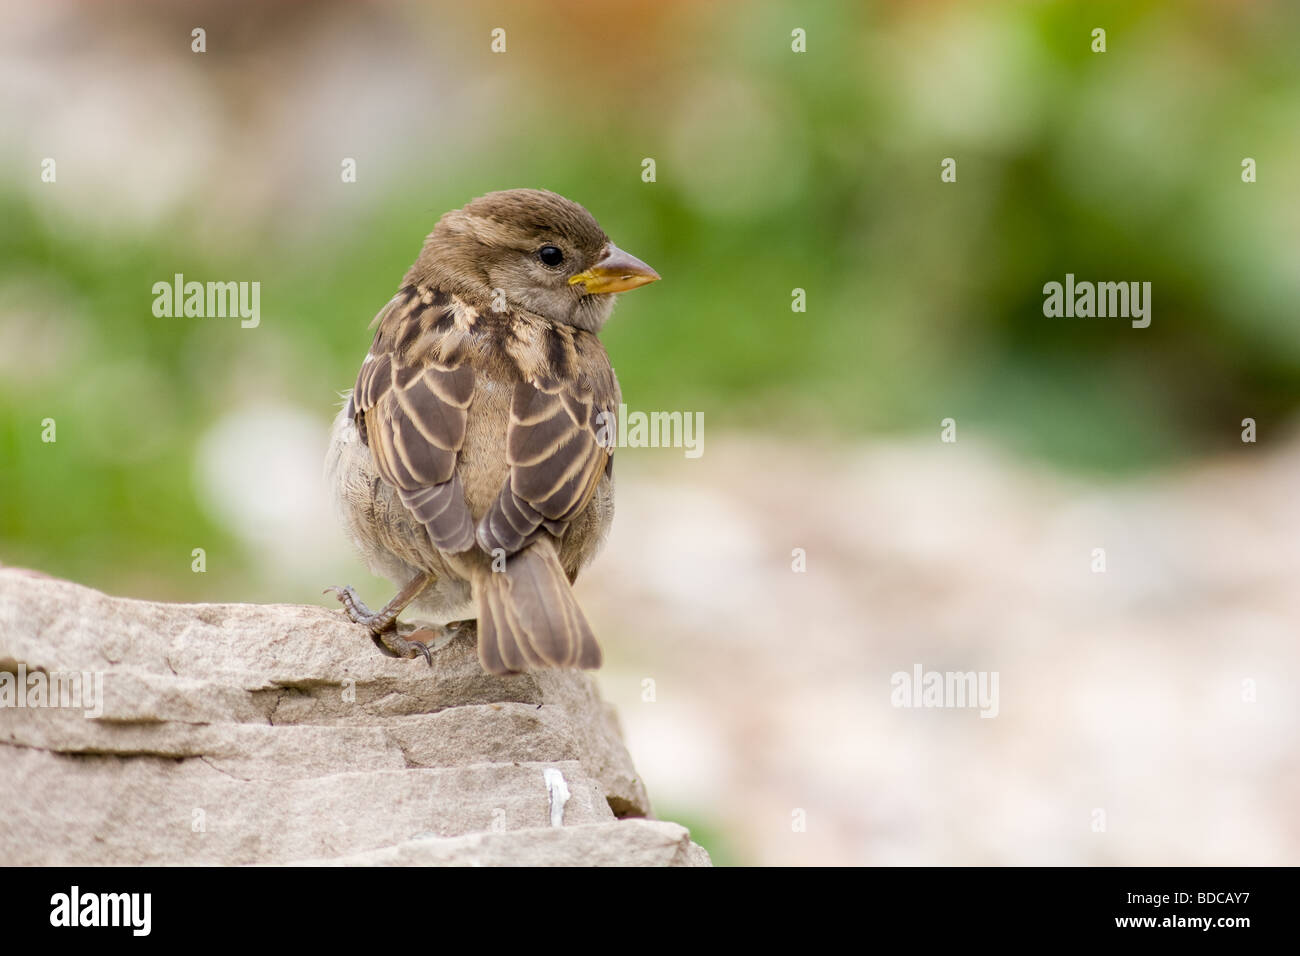 The pretty young sparrow sits on a stone - Stock Image